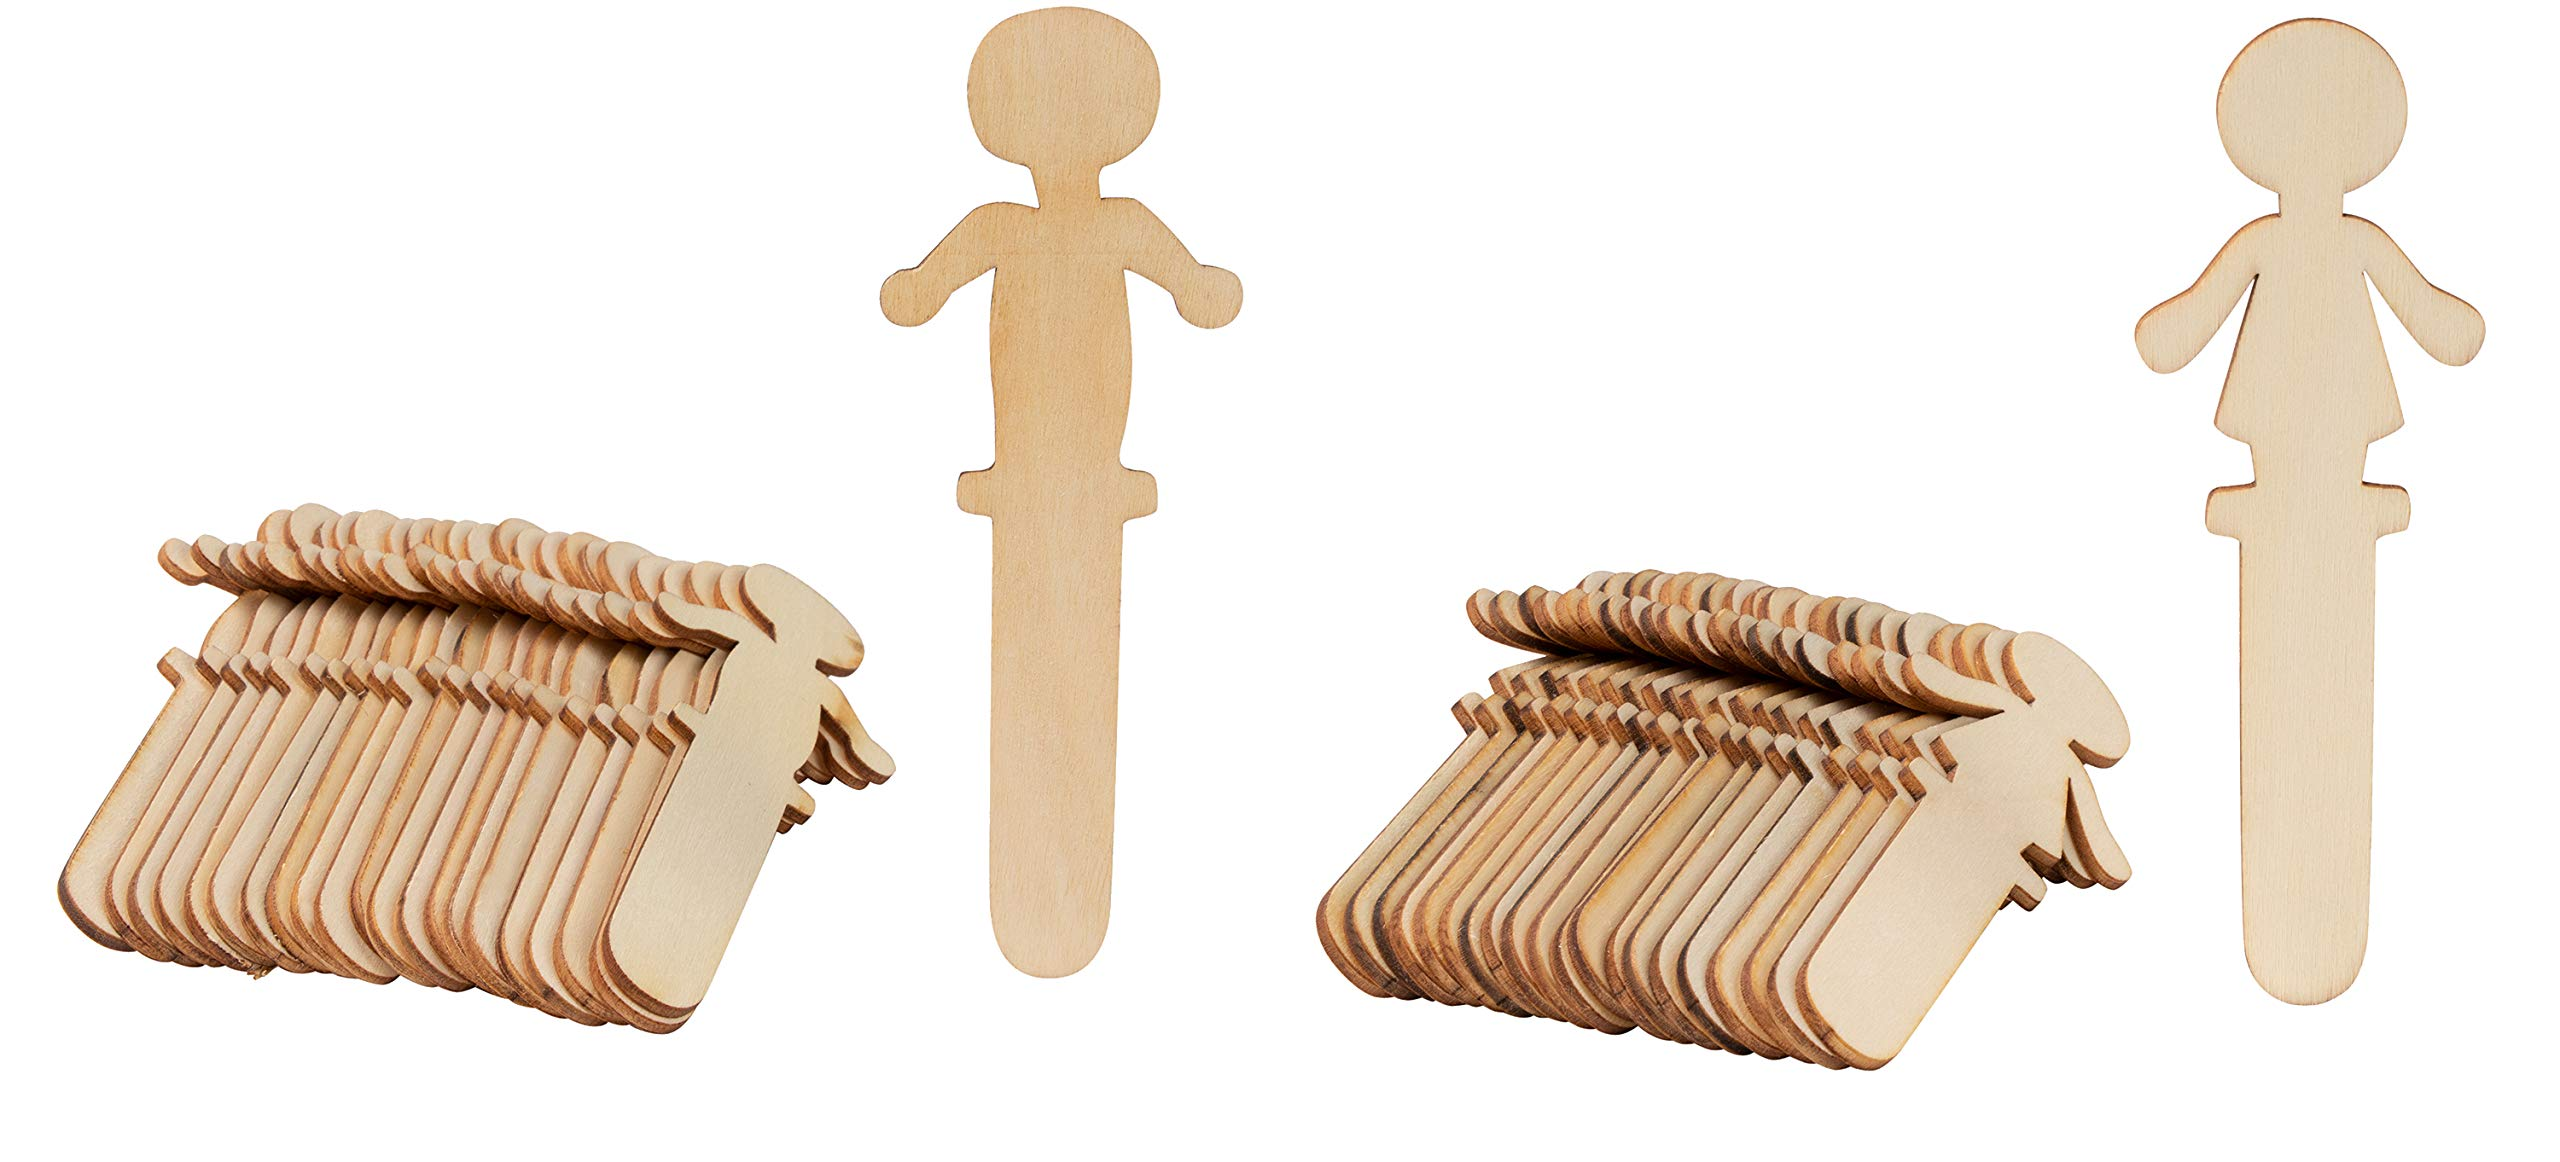 People Craft Sticks - 100-Pack Wooden People Shaped Craft Sticks, 5.8 x 2 x 0.1 Inch Male and Female Wood Craft Sticks People for DIY Arts and Crafts Projects, Crafting Supplies by Juvale